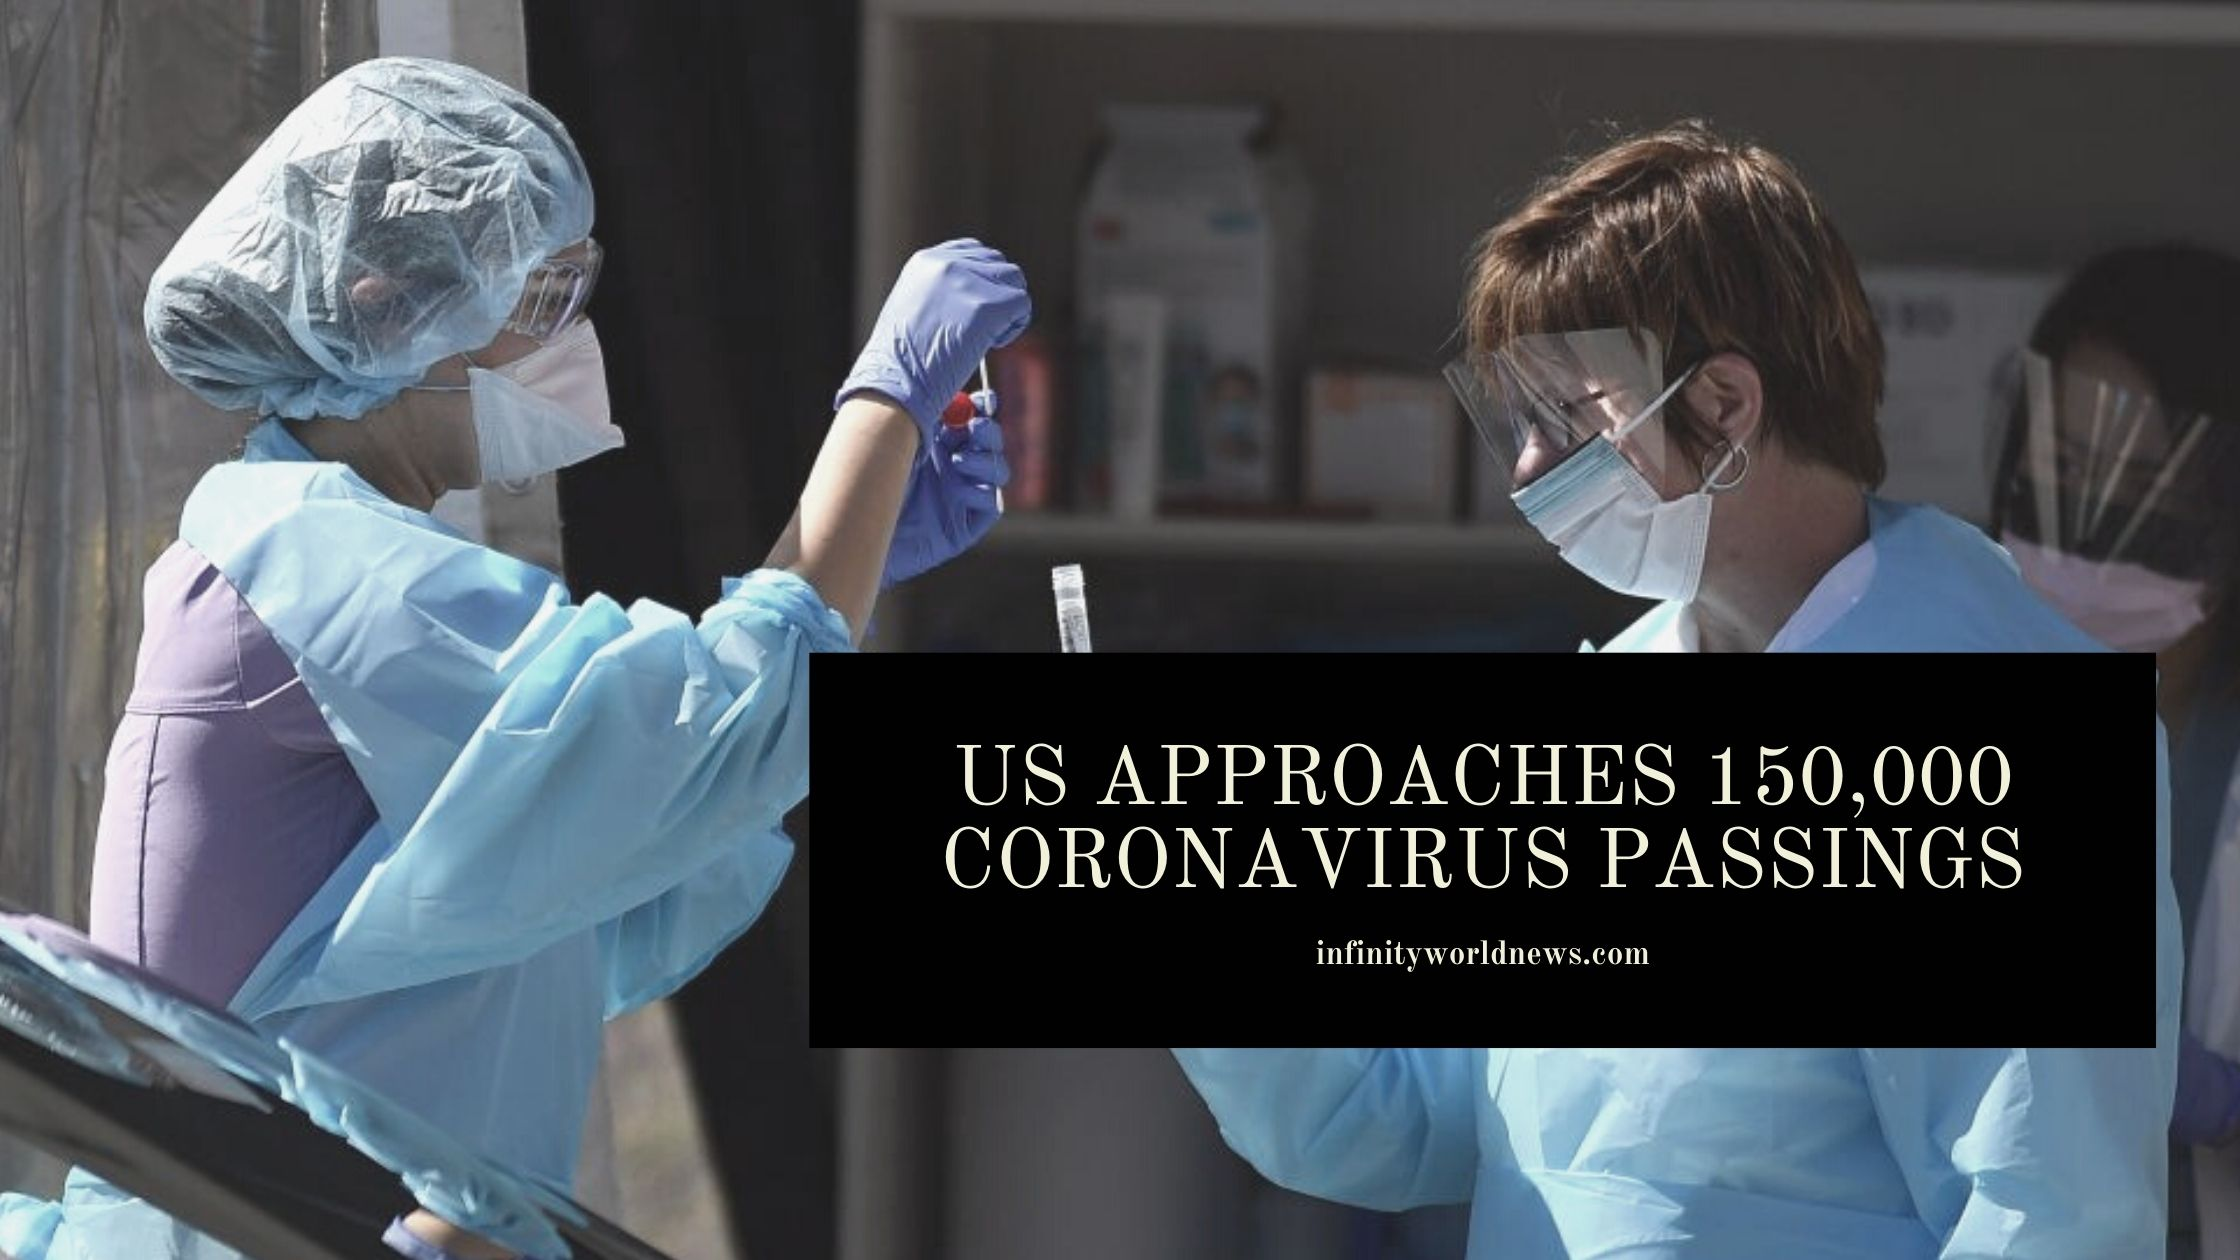 US approaches 150,000 coronavirus passings